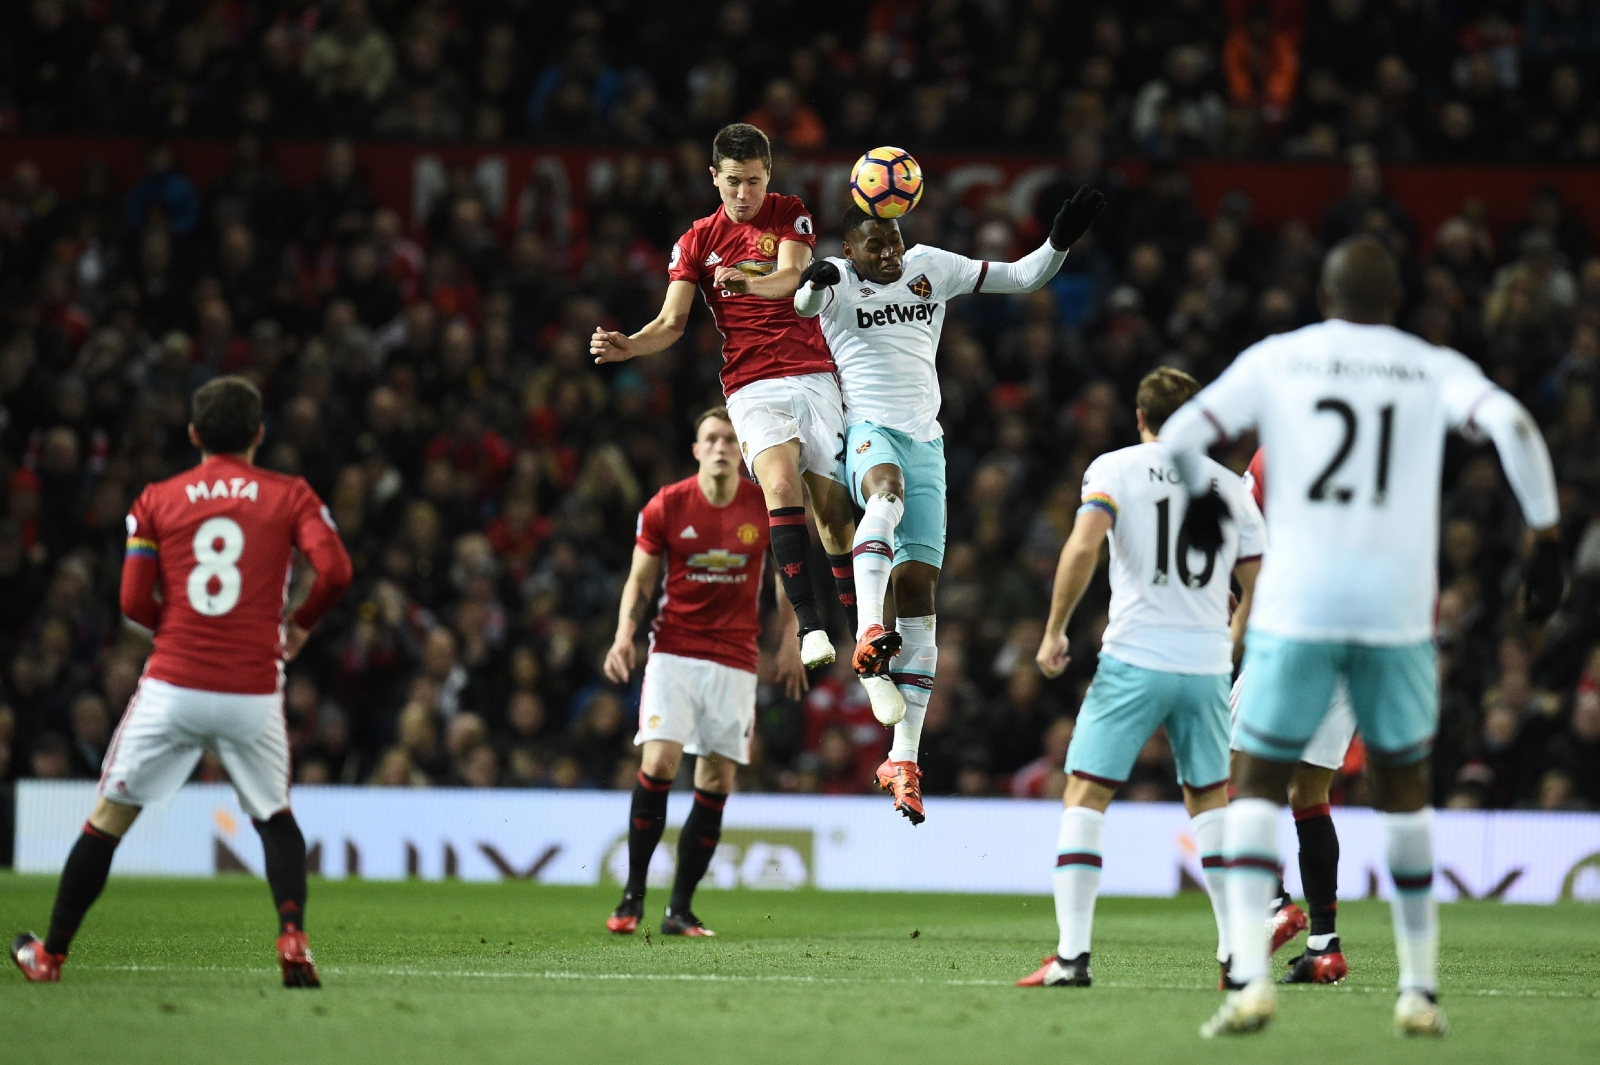 West Ham striker misses Manchester United clash as Carroll waits for chance